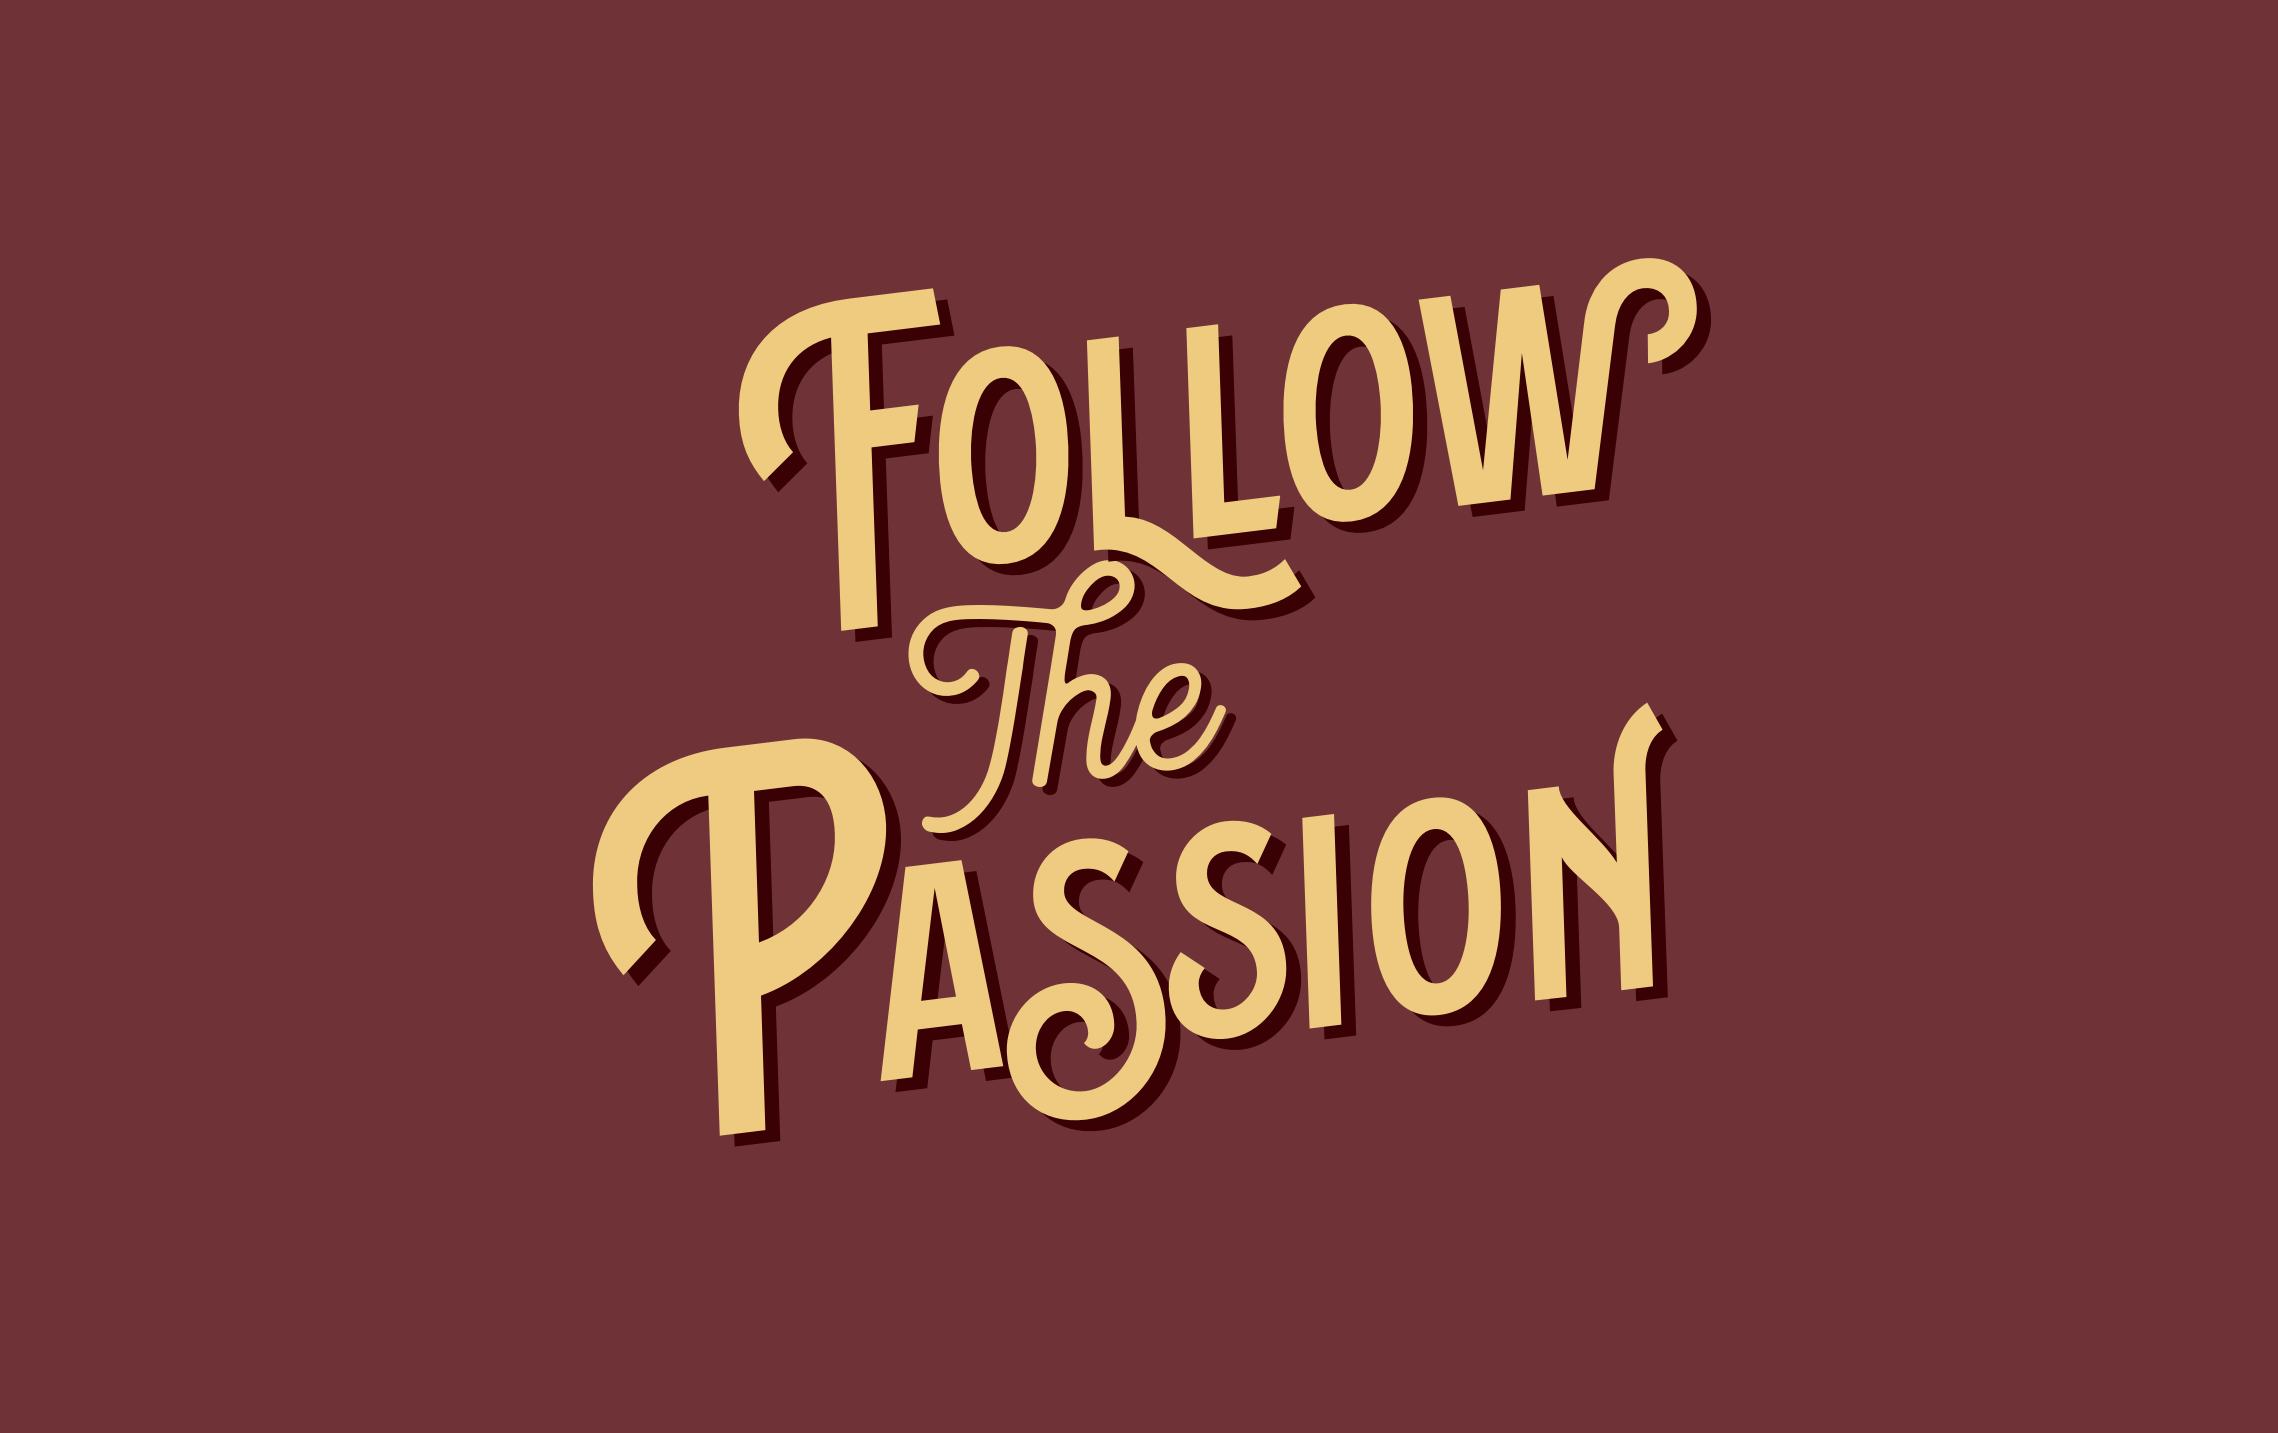 Follow the Passion